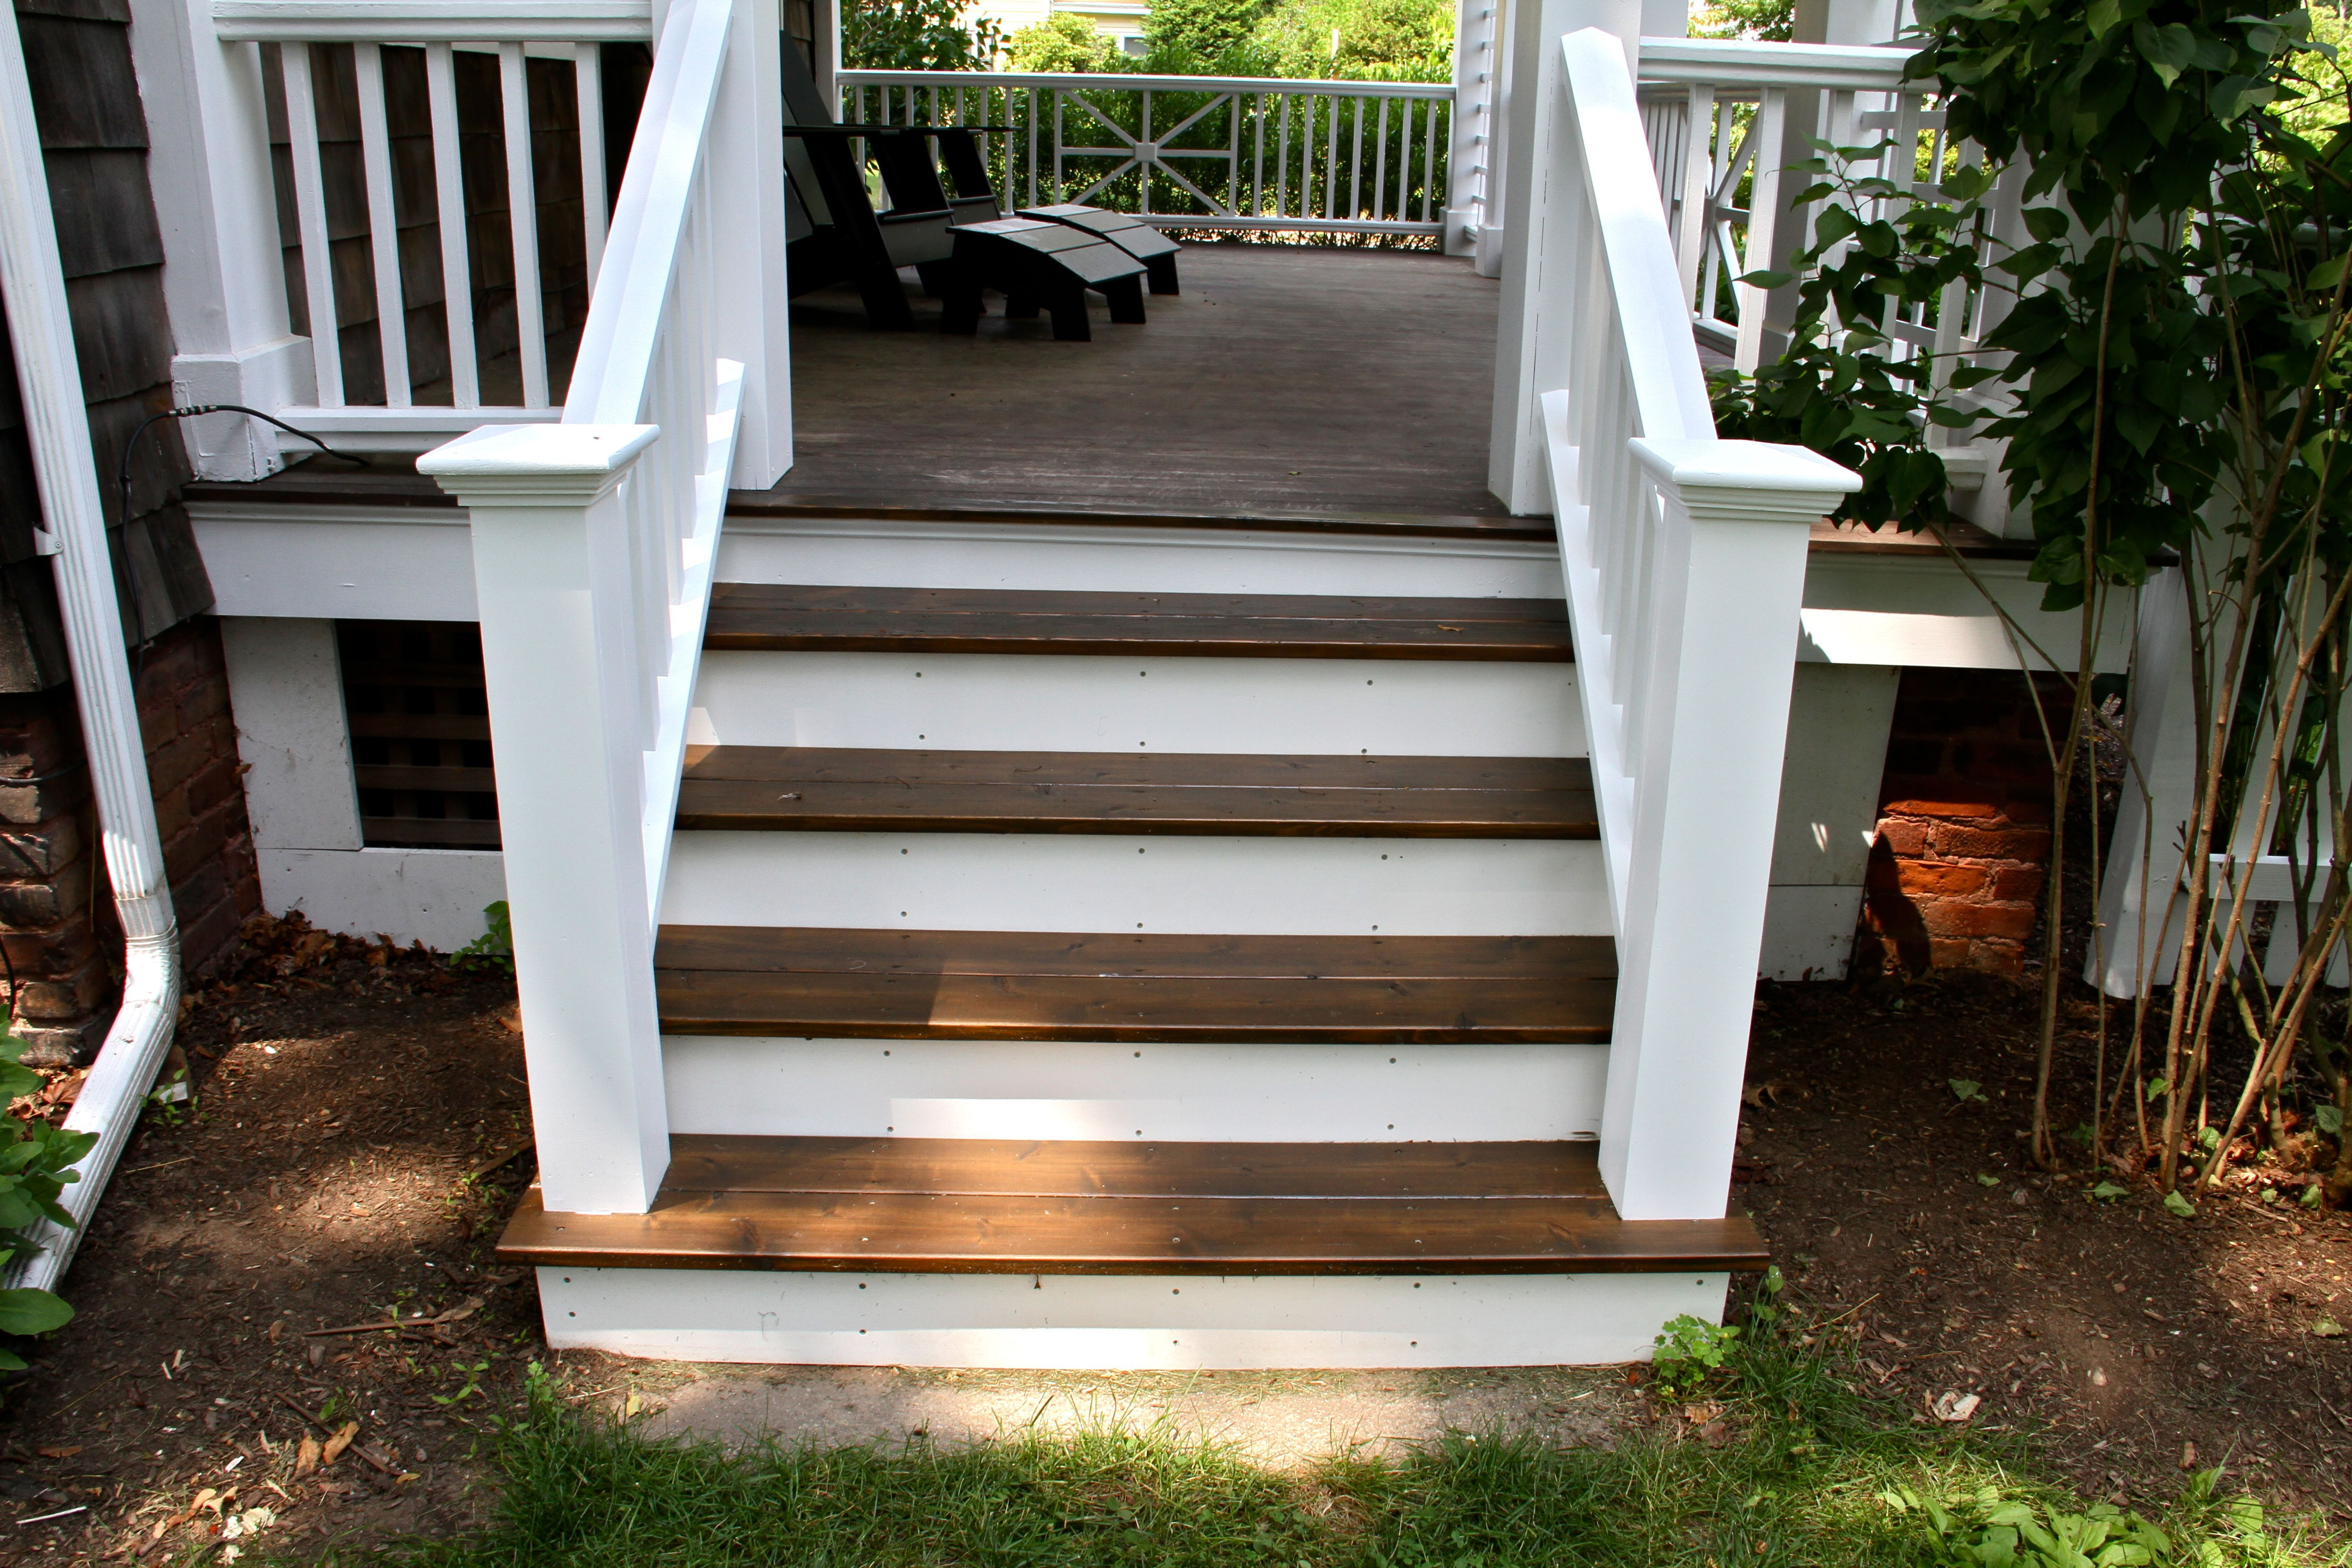 Ordinaire AFTER: The Porch Stairs, Railings Painted To Match The Rest Of The Trim And  Porch Railings; Treads Re Stained With Cabot Exterior Oil Based Stain In  Burnt ...